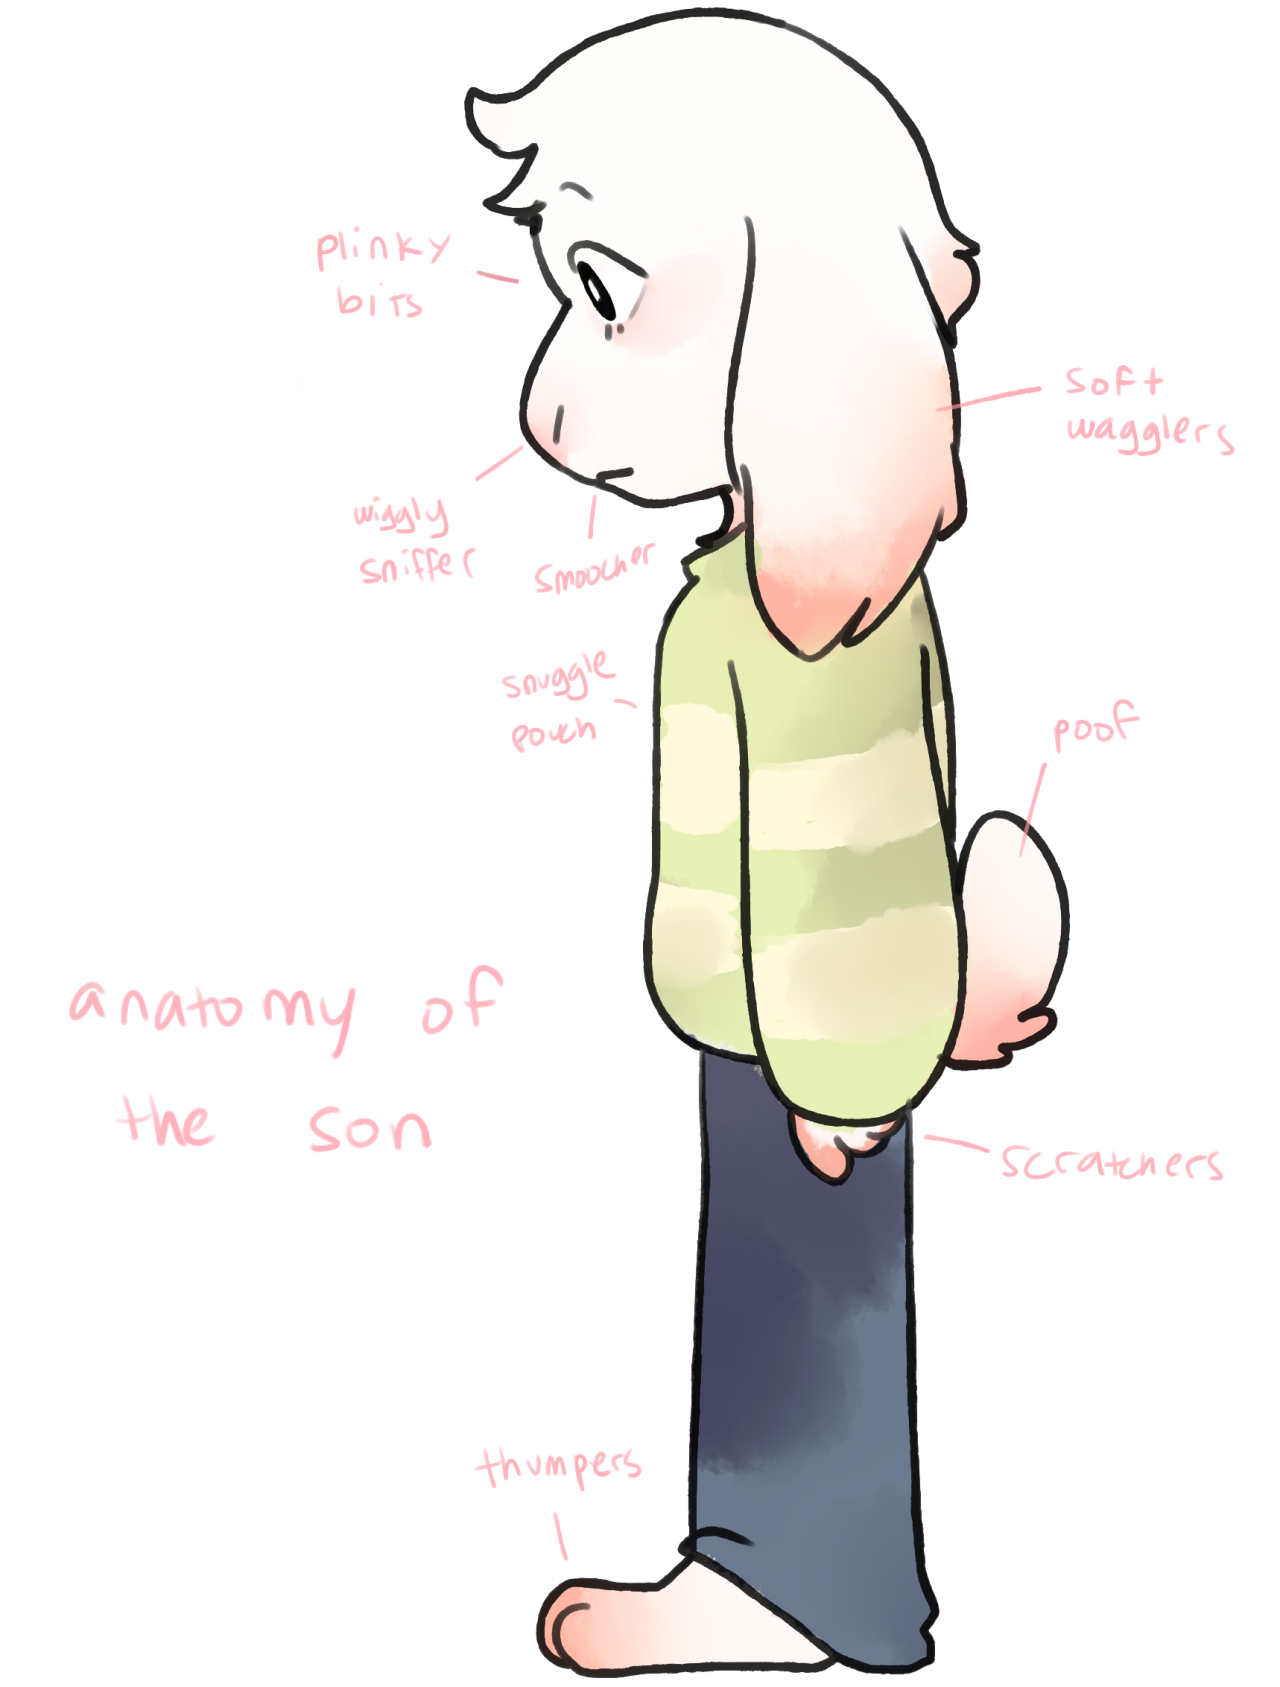 goat anatomy | Undertale | Know Your Meme